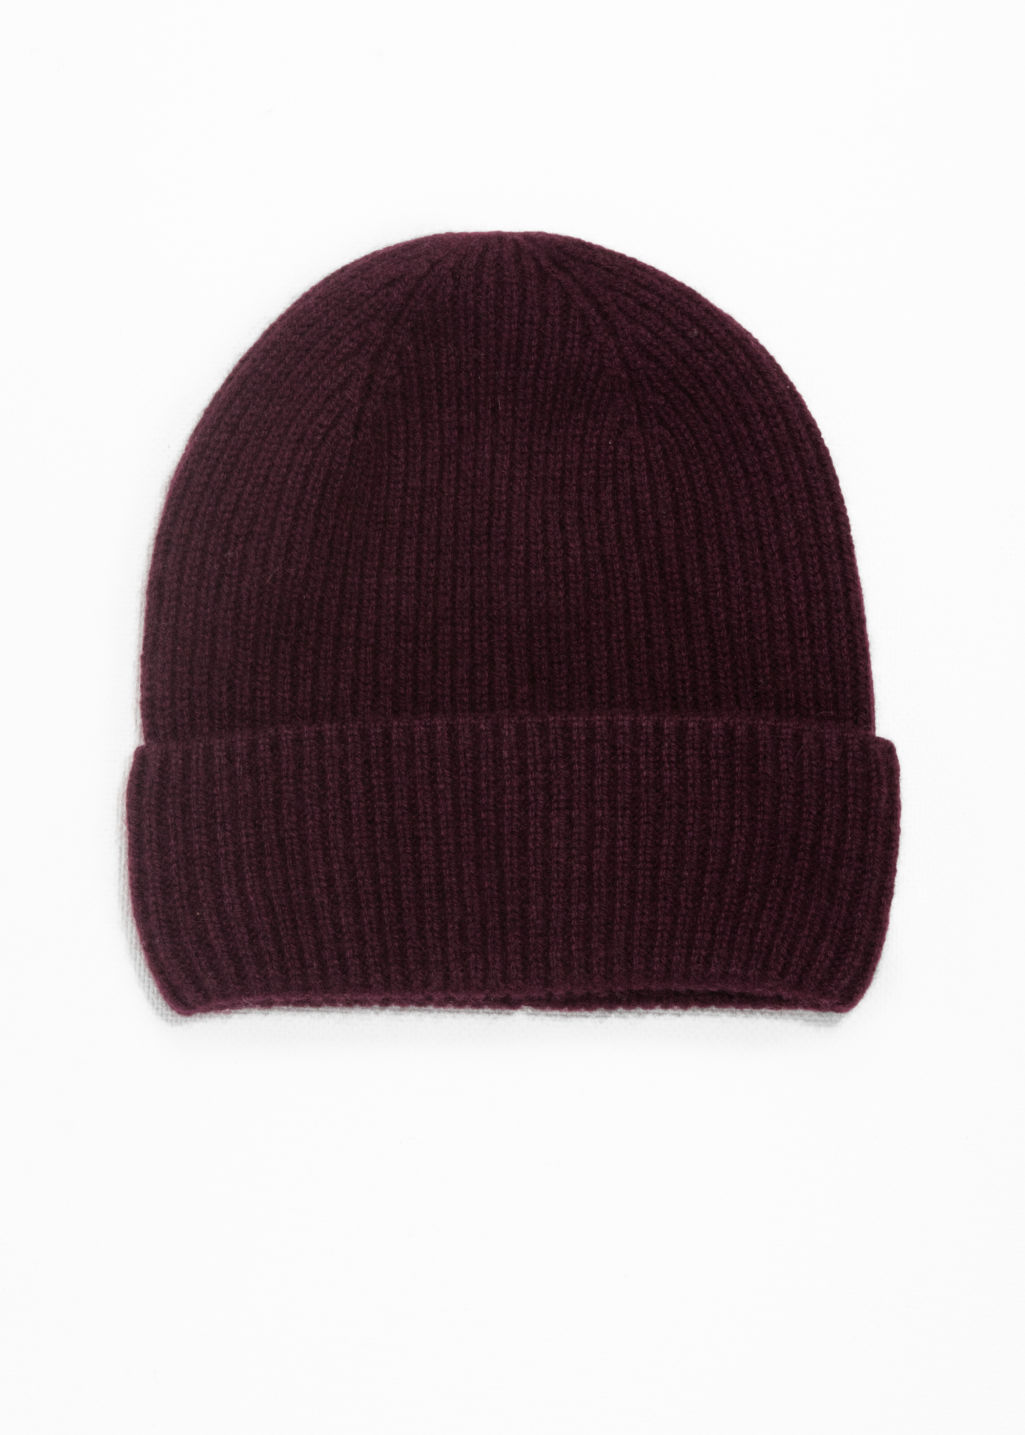 Cashmere Beanie - Burgundy - Beanies -   Other Stories e4bd935ff86